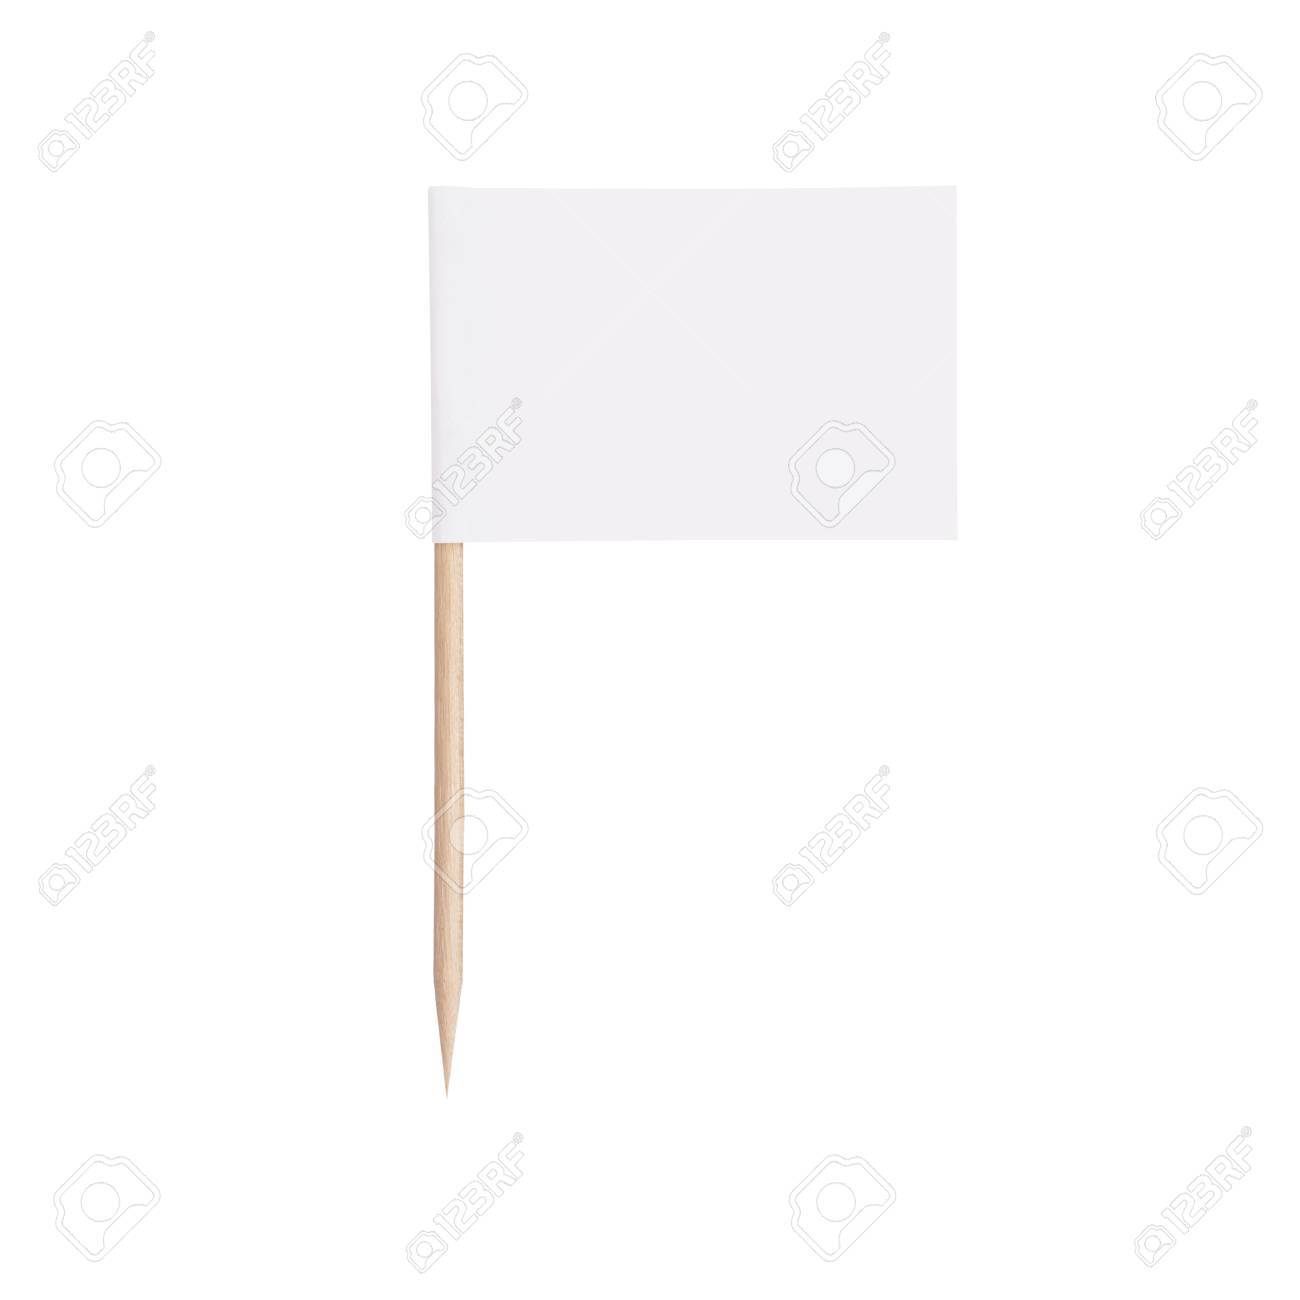 white paper flag. Ready for a Message. Isolated on white background.With clipping path - 36365695